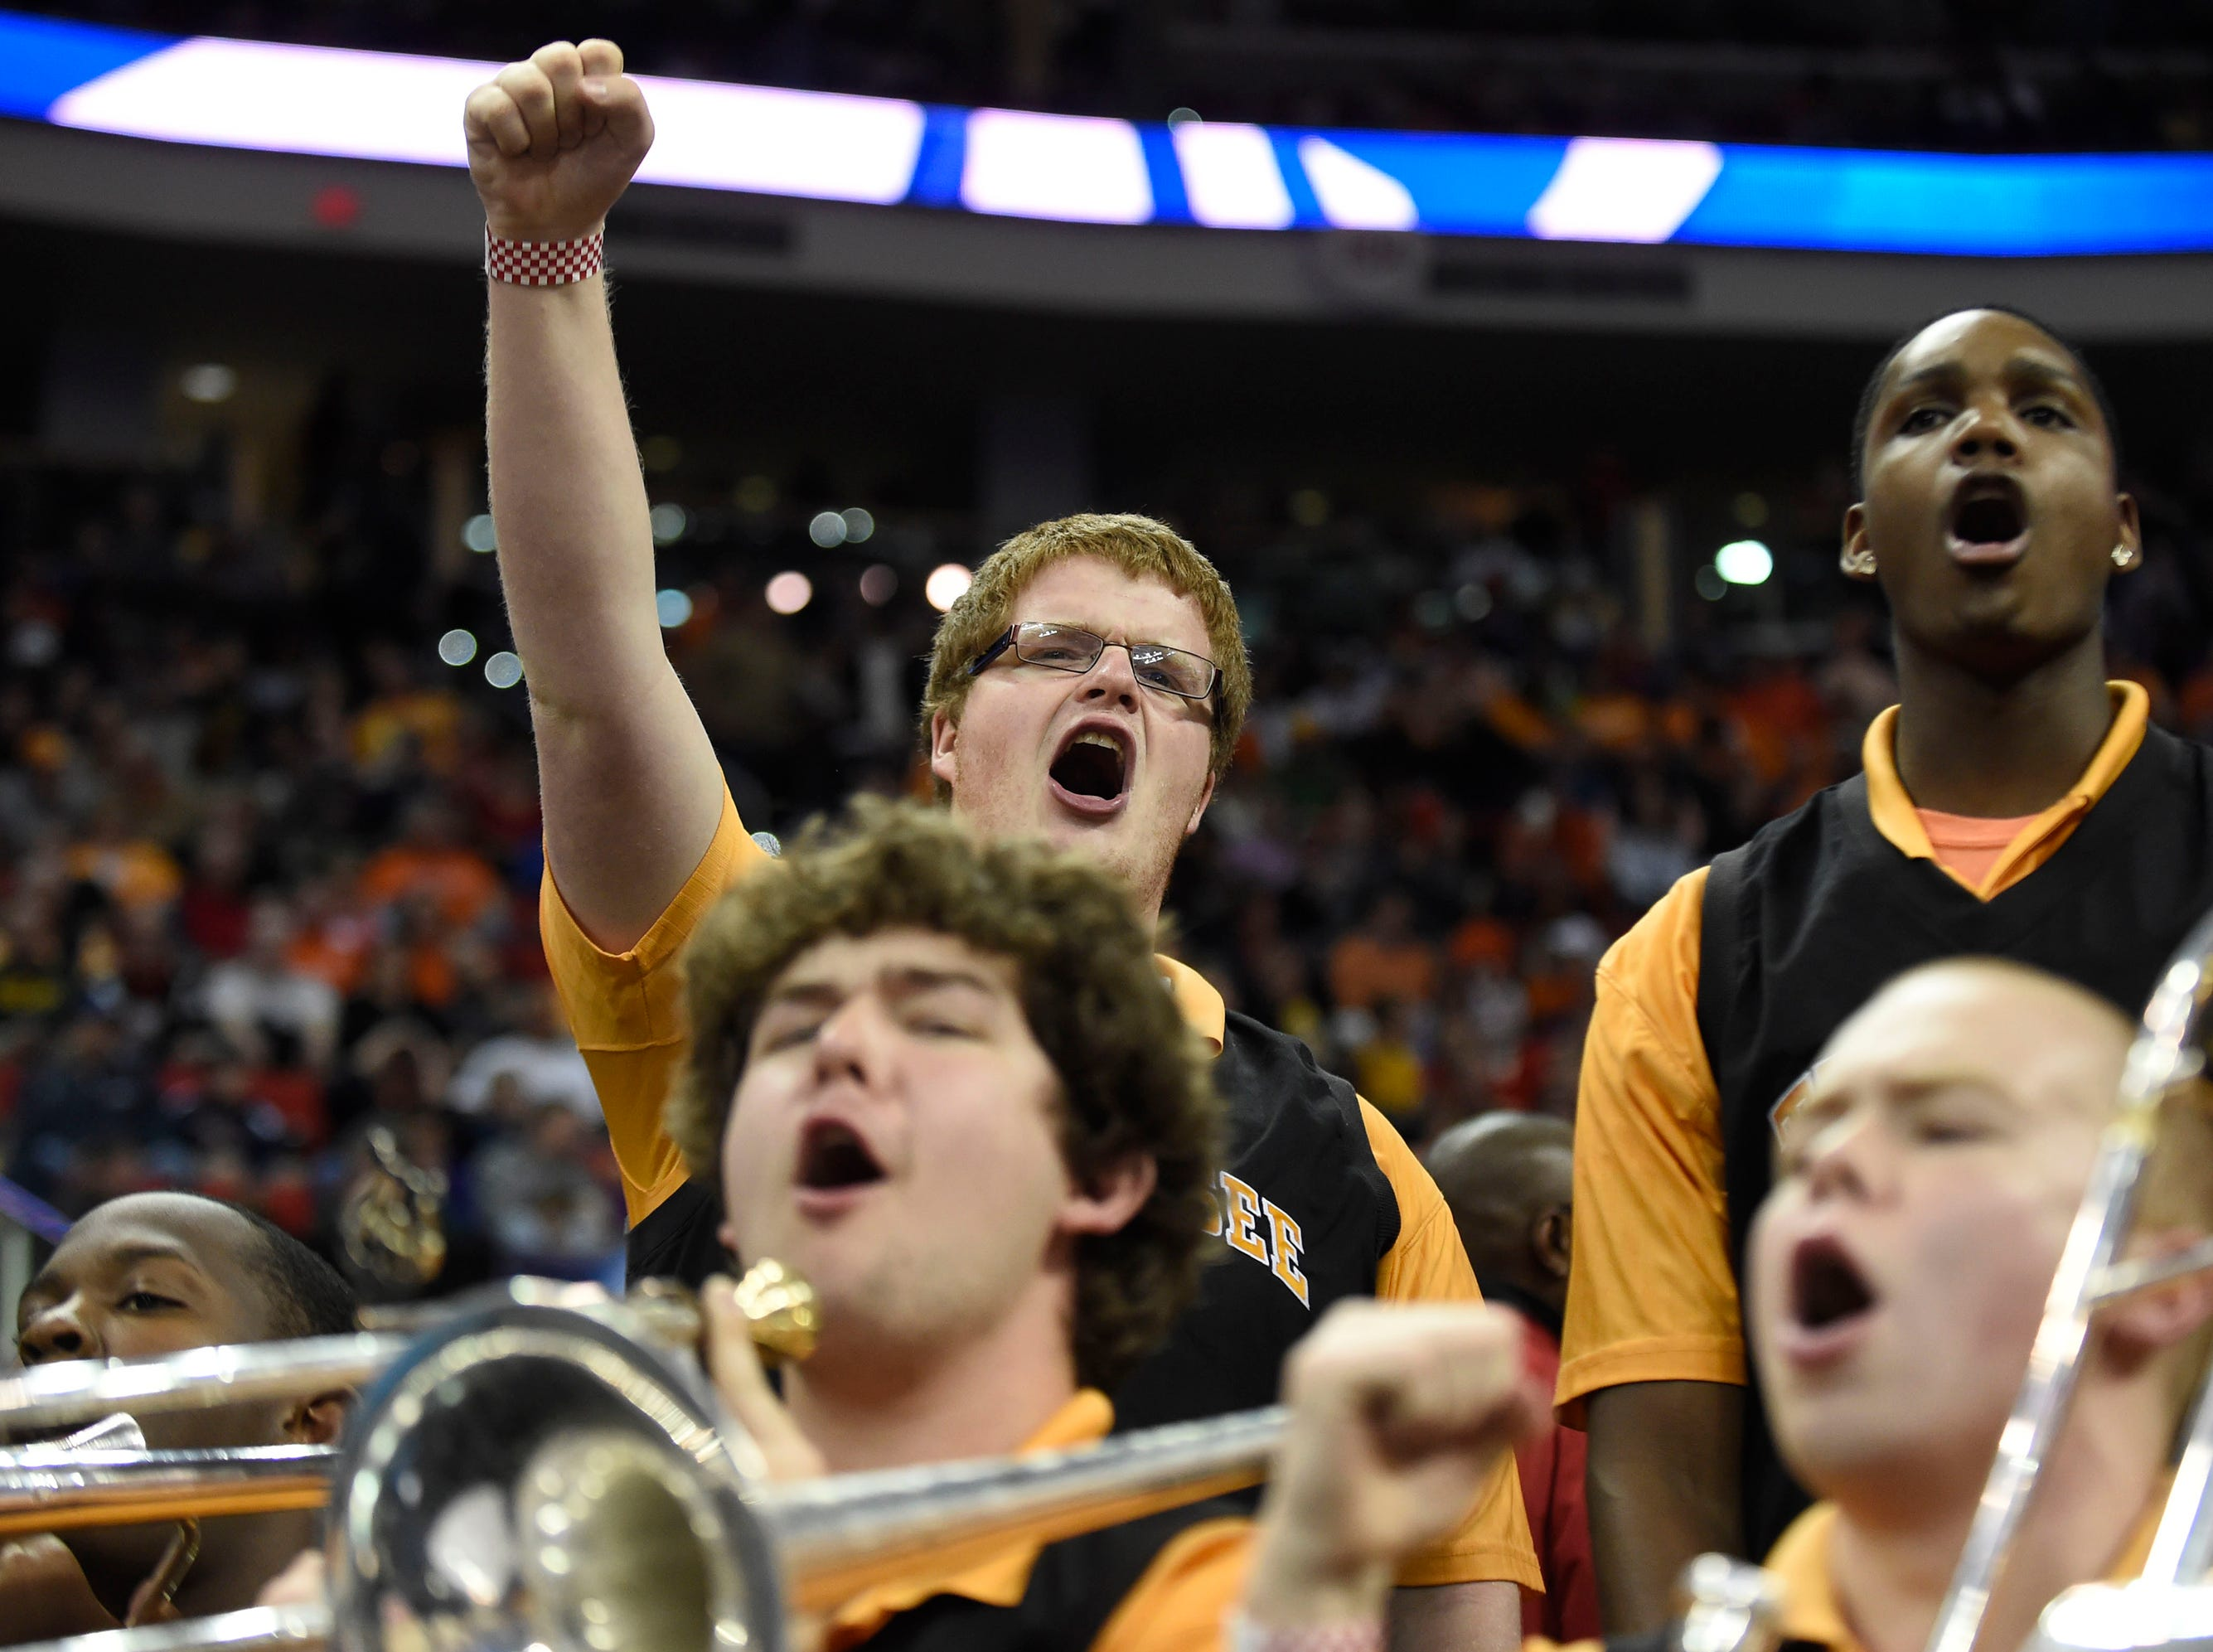 Tennessee's band cheers during their team's 83-63 defeat of Mercer in a third-round NCAA tournament game at the PNC Arena in Raleigh, N.C. on Sunday, March 23, 2014.